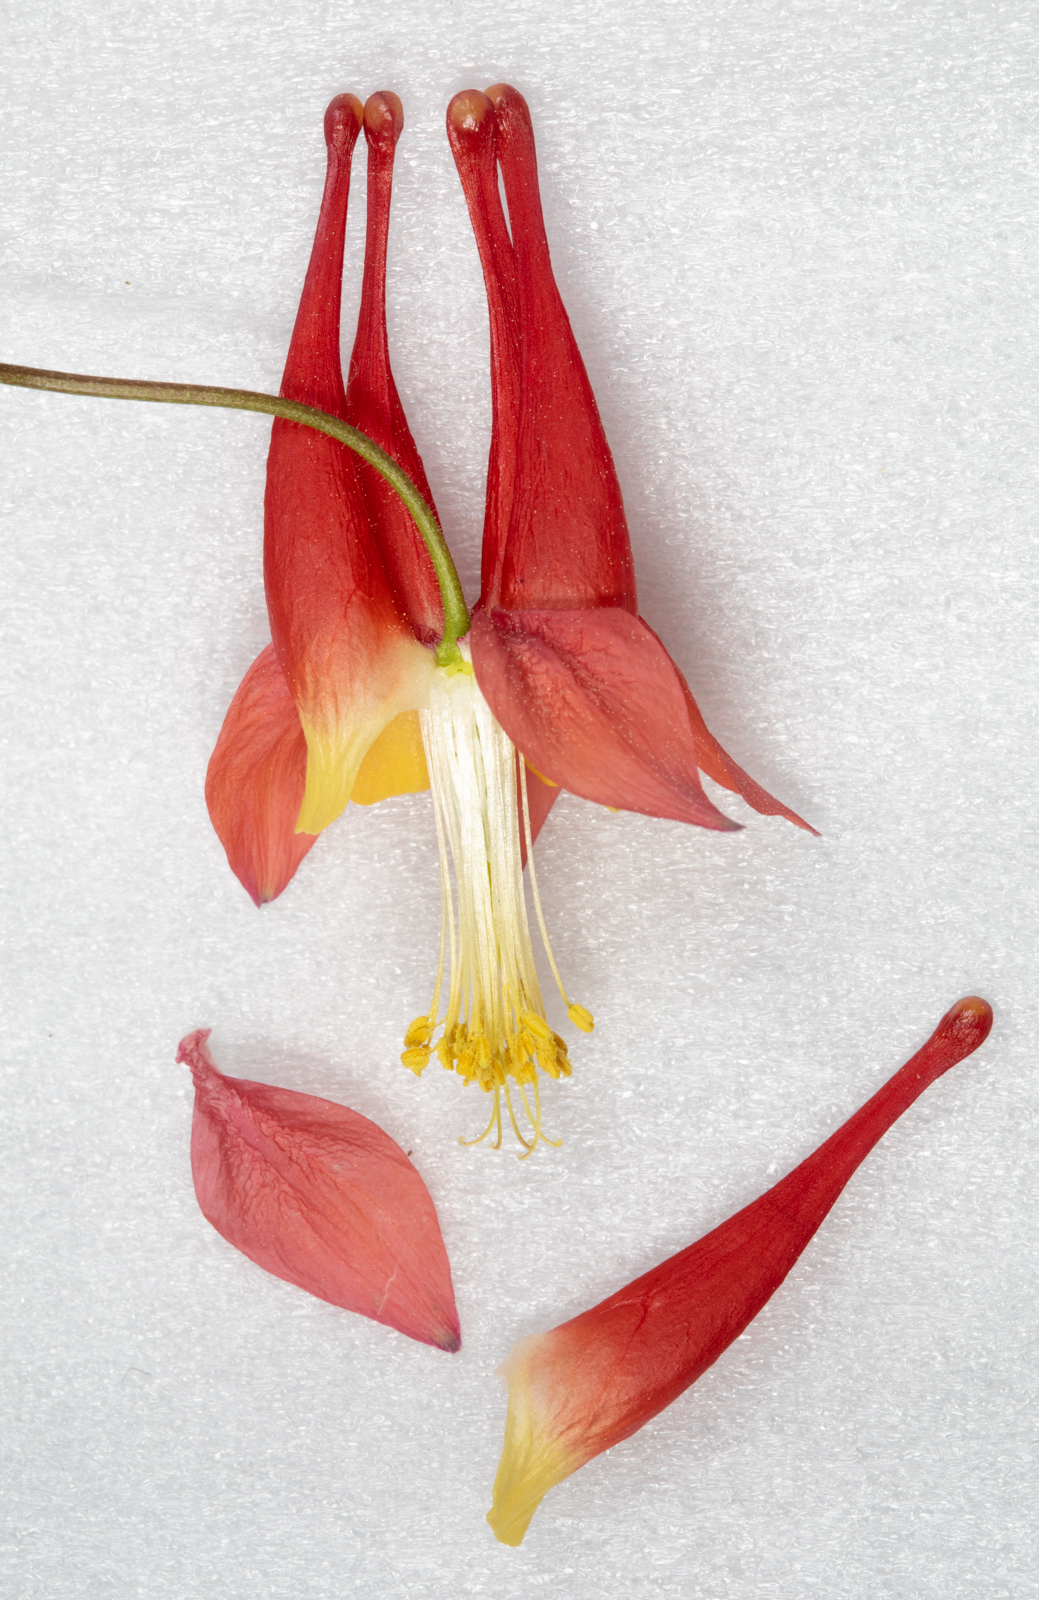 Columbine flower with two outer parts removed